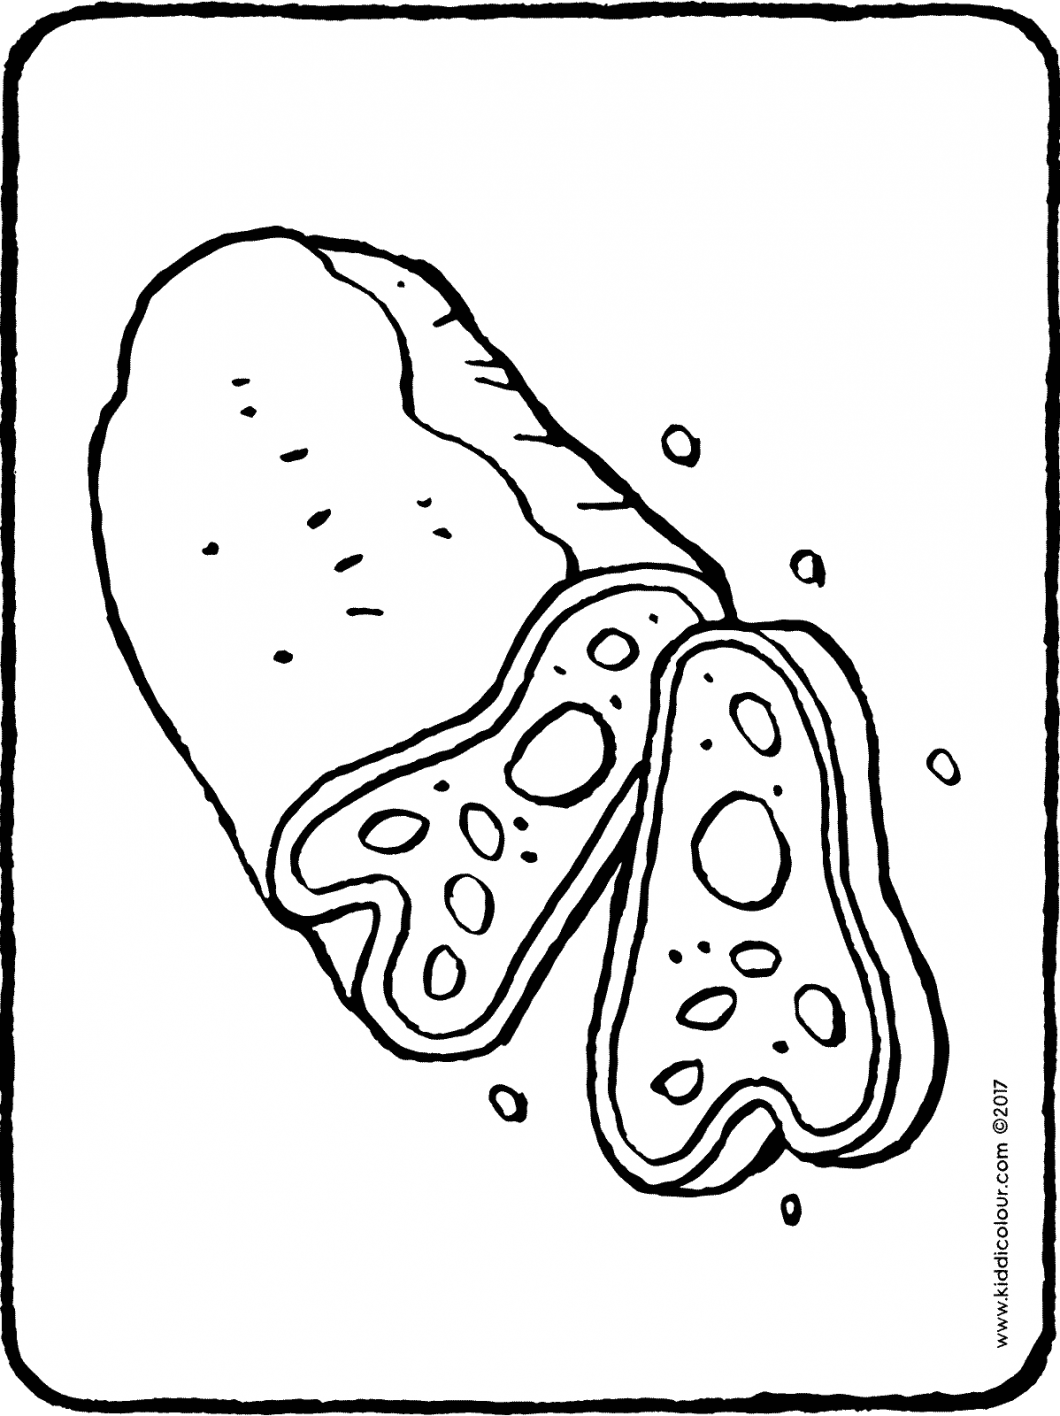 stollen colouring page page drawing picture 01H